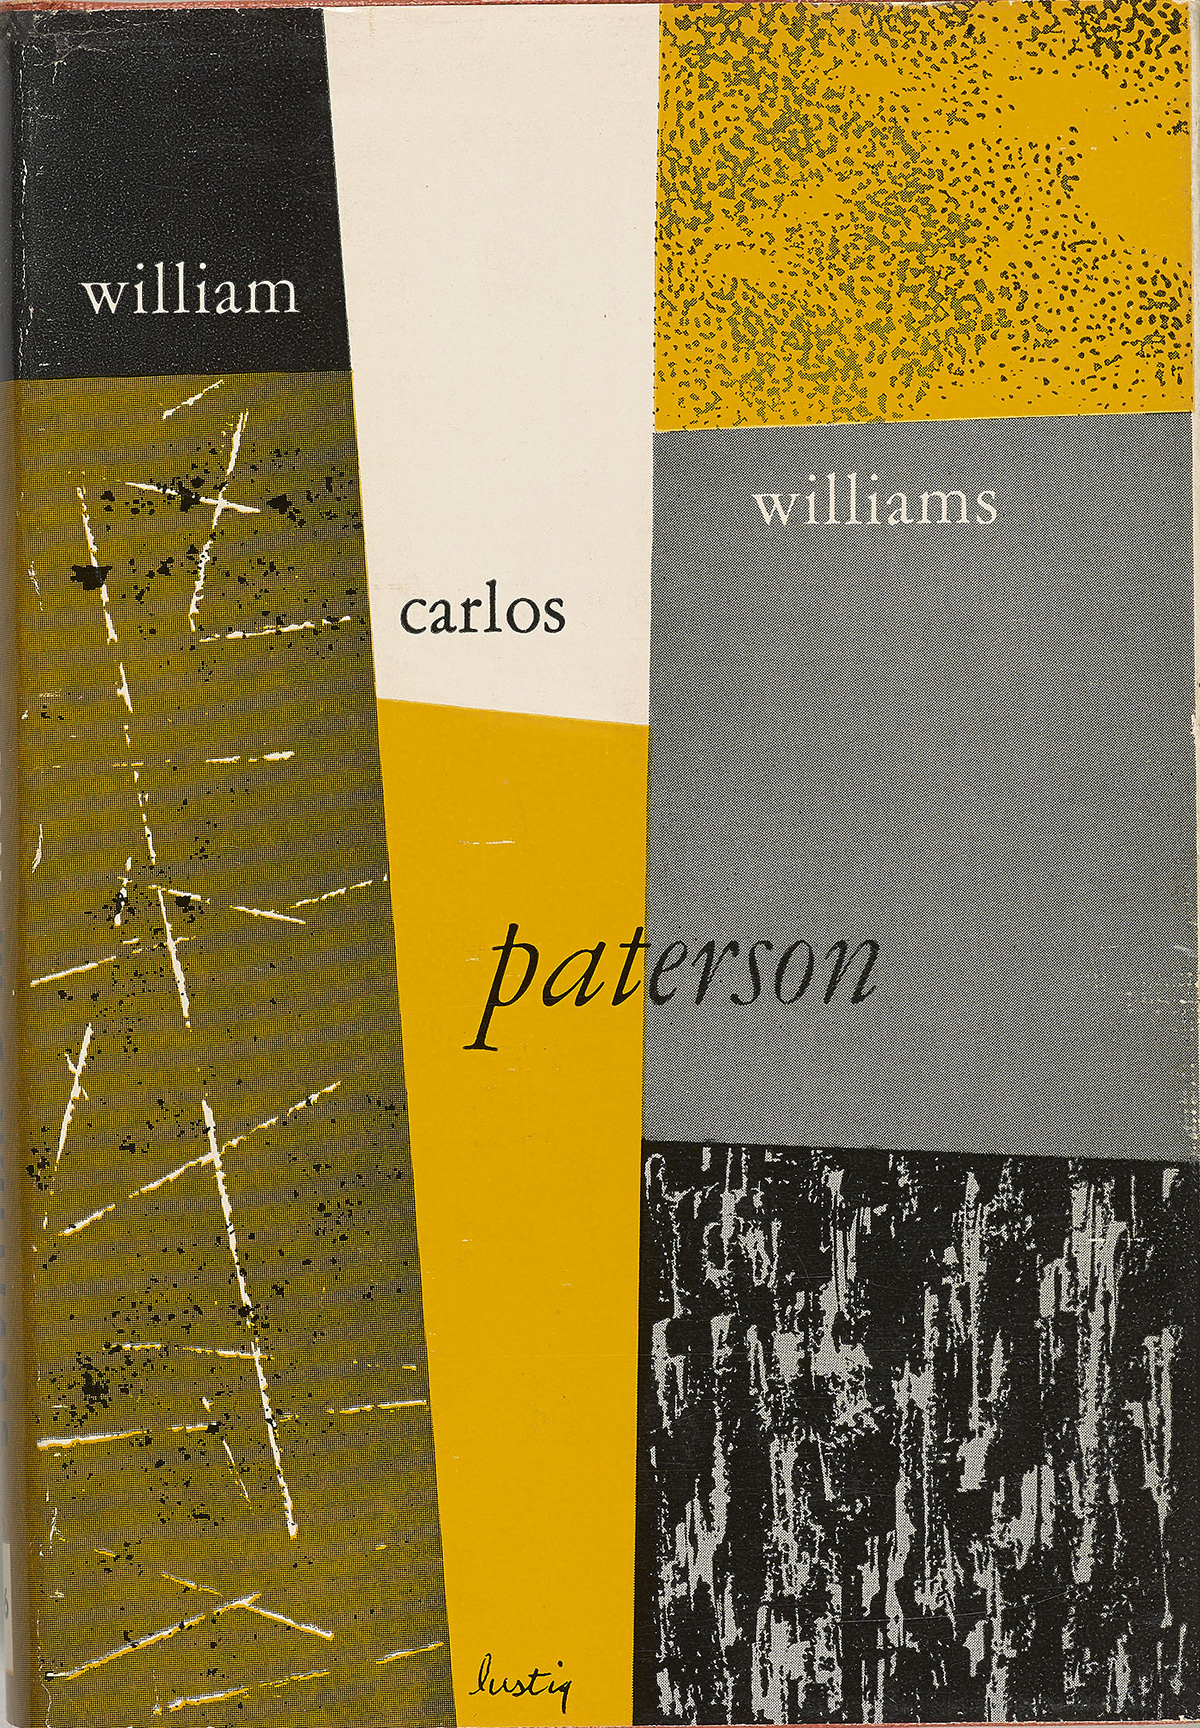 Alvin-Lustig-couvertures-william-carlos-paterson